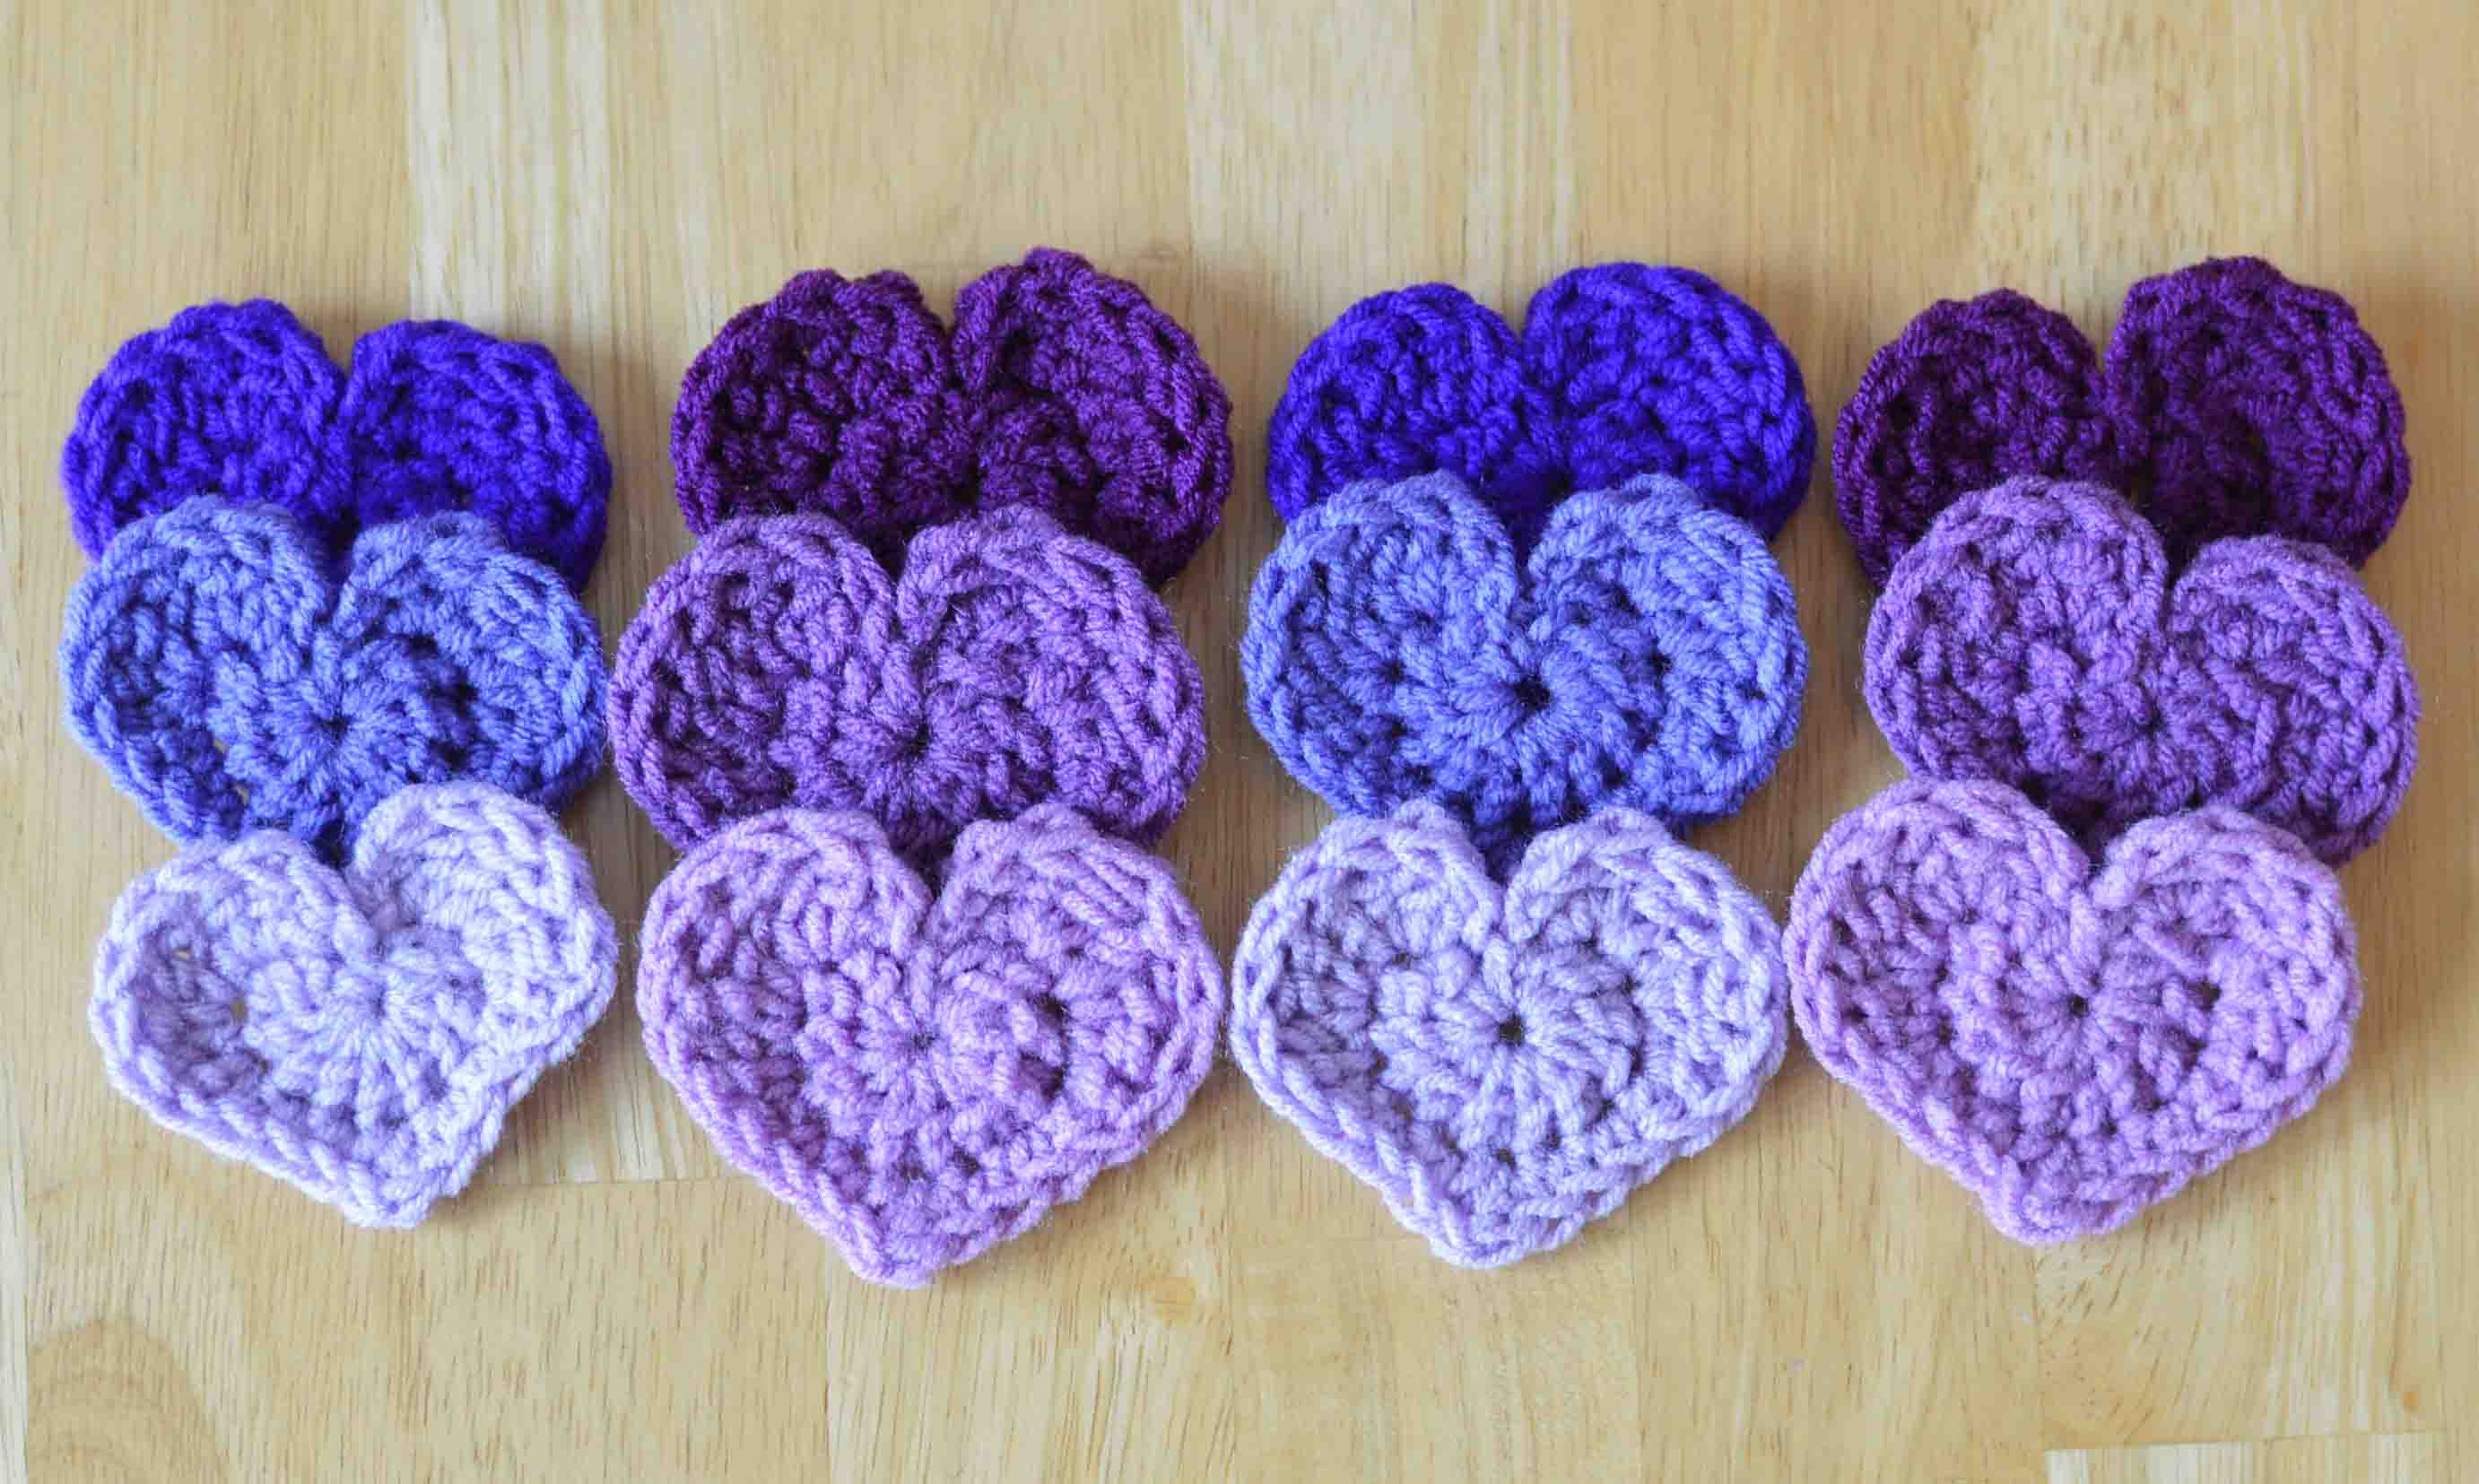 red heart free crochet patterns Book Covers